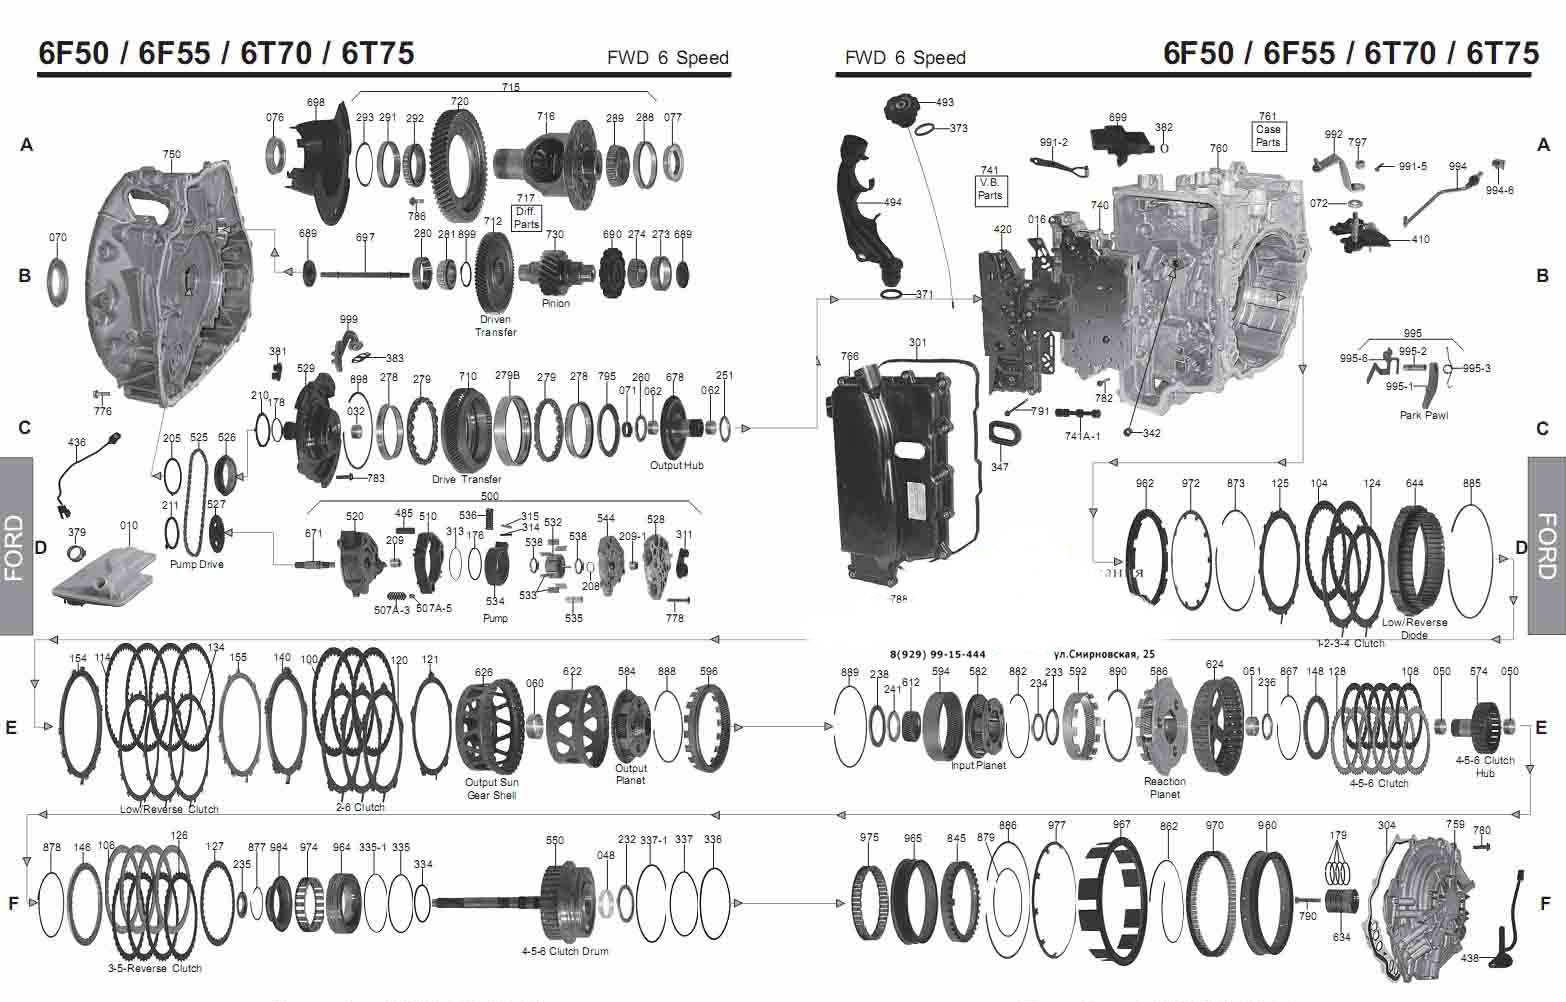 Chevy Traverse Radio Wiring Custom Project Diagram 2012 Ford Explorer Automatic Transmission Problems 2010 2014